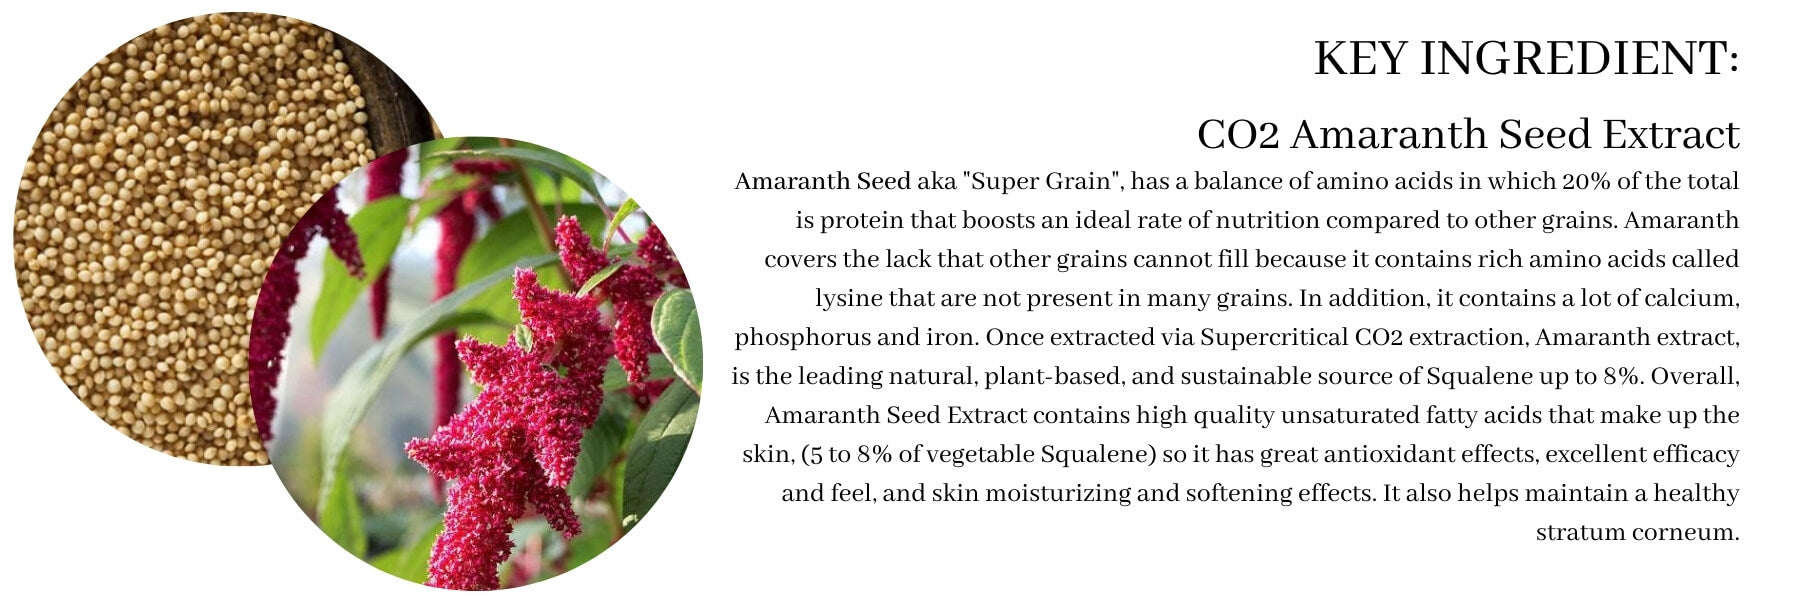 Amaranth Seed Extract